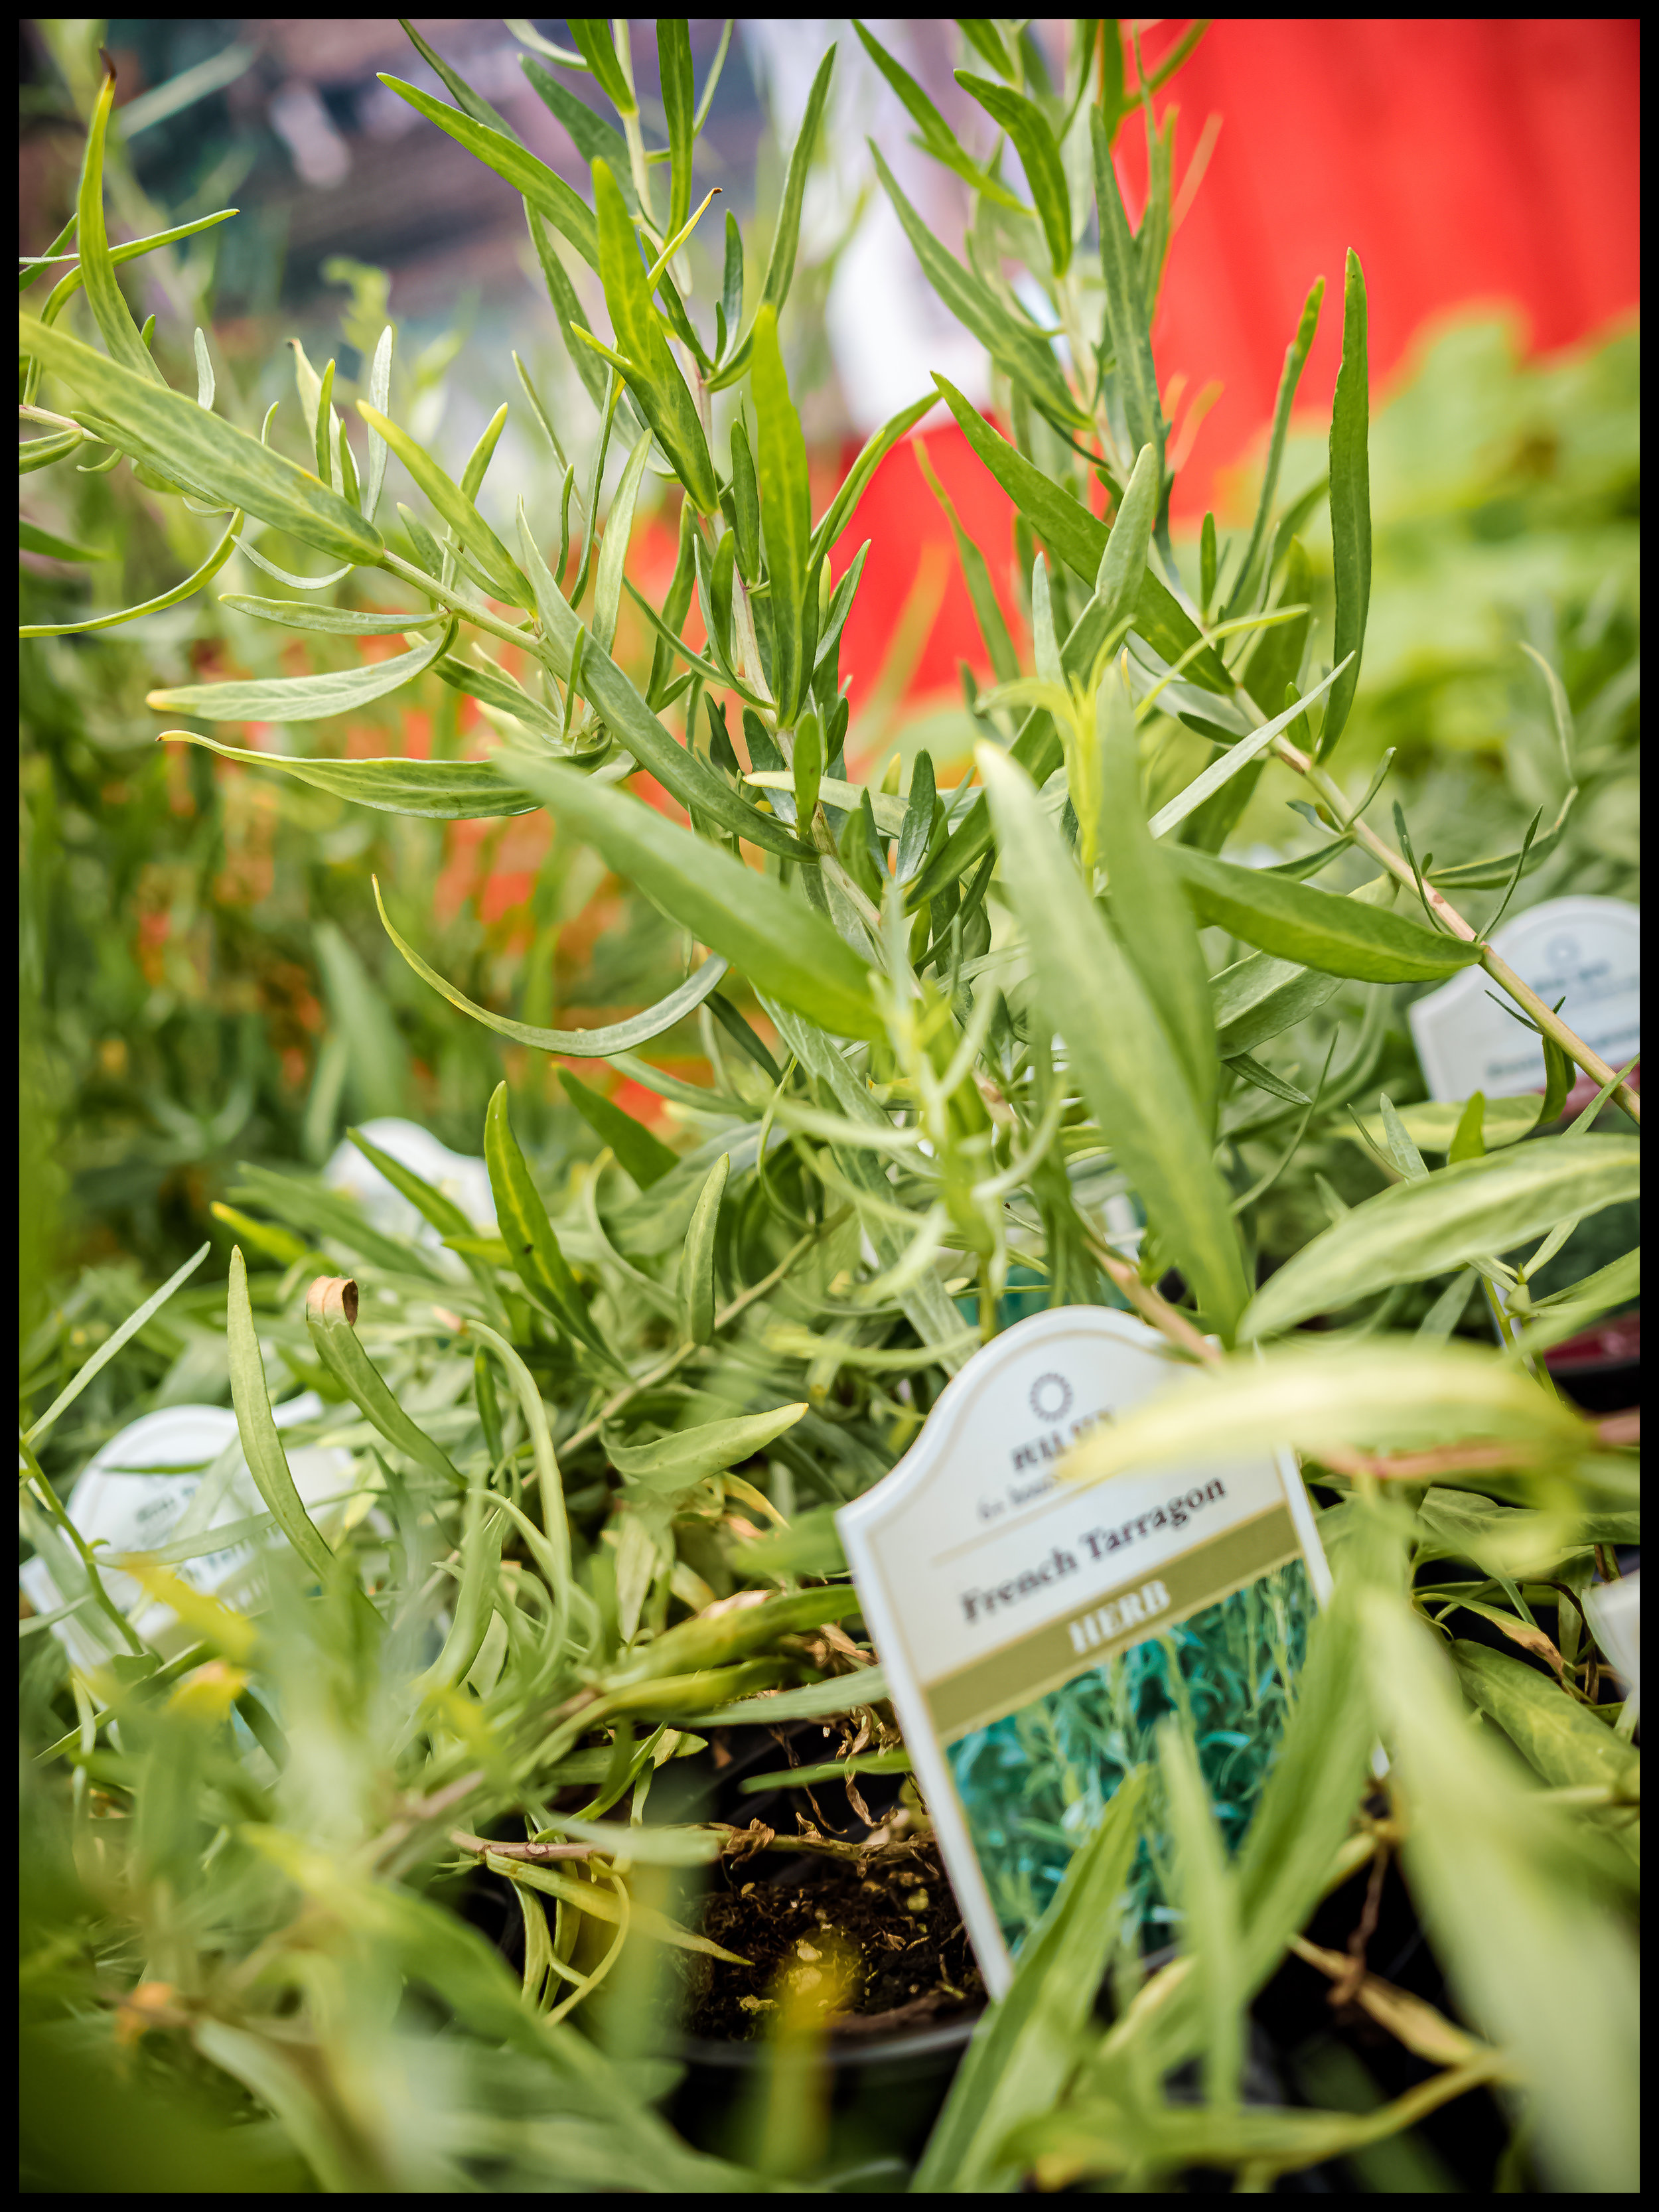 French Tarragon has a heavily aromatic taste and smell that enhances the flavor of most seafood recipes